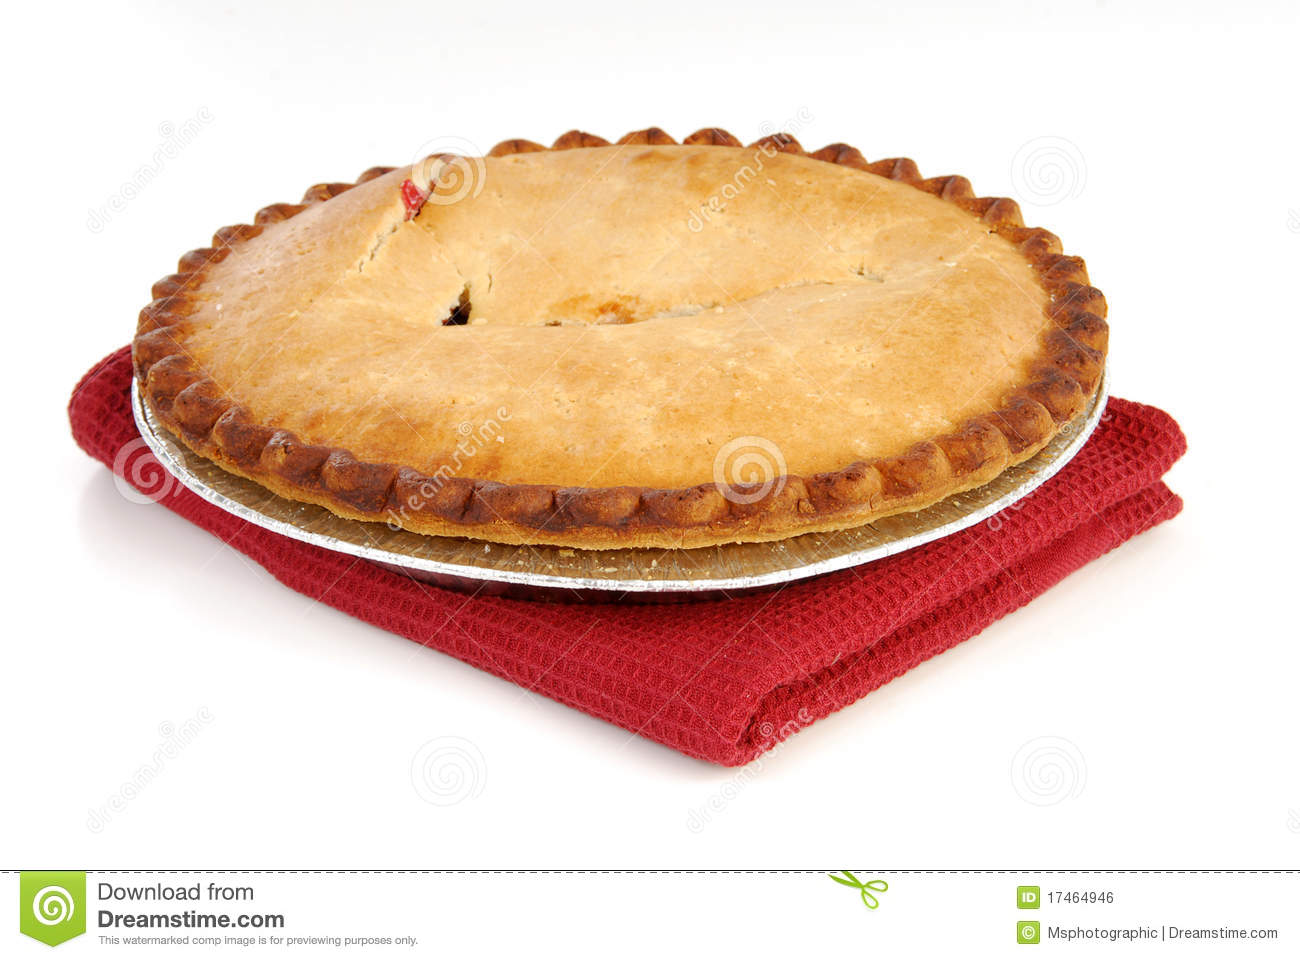 Cherry Pie Royalty Free Stock Image - Image: 17464946